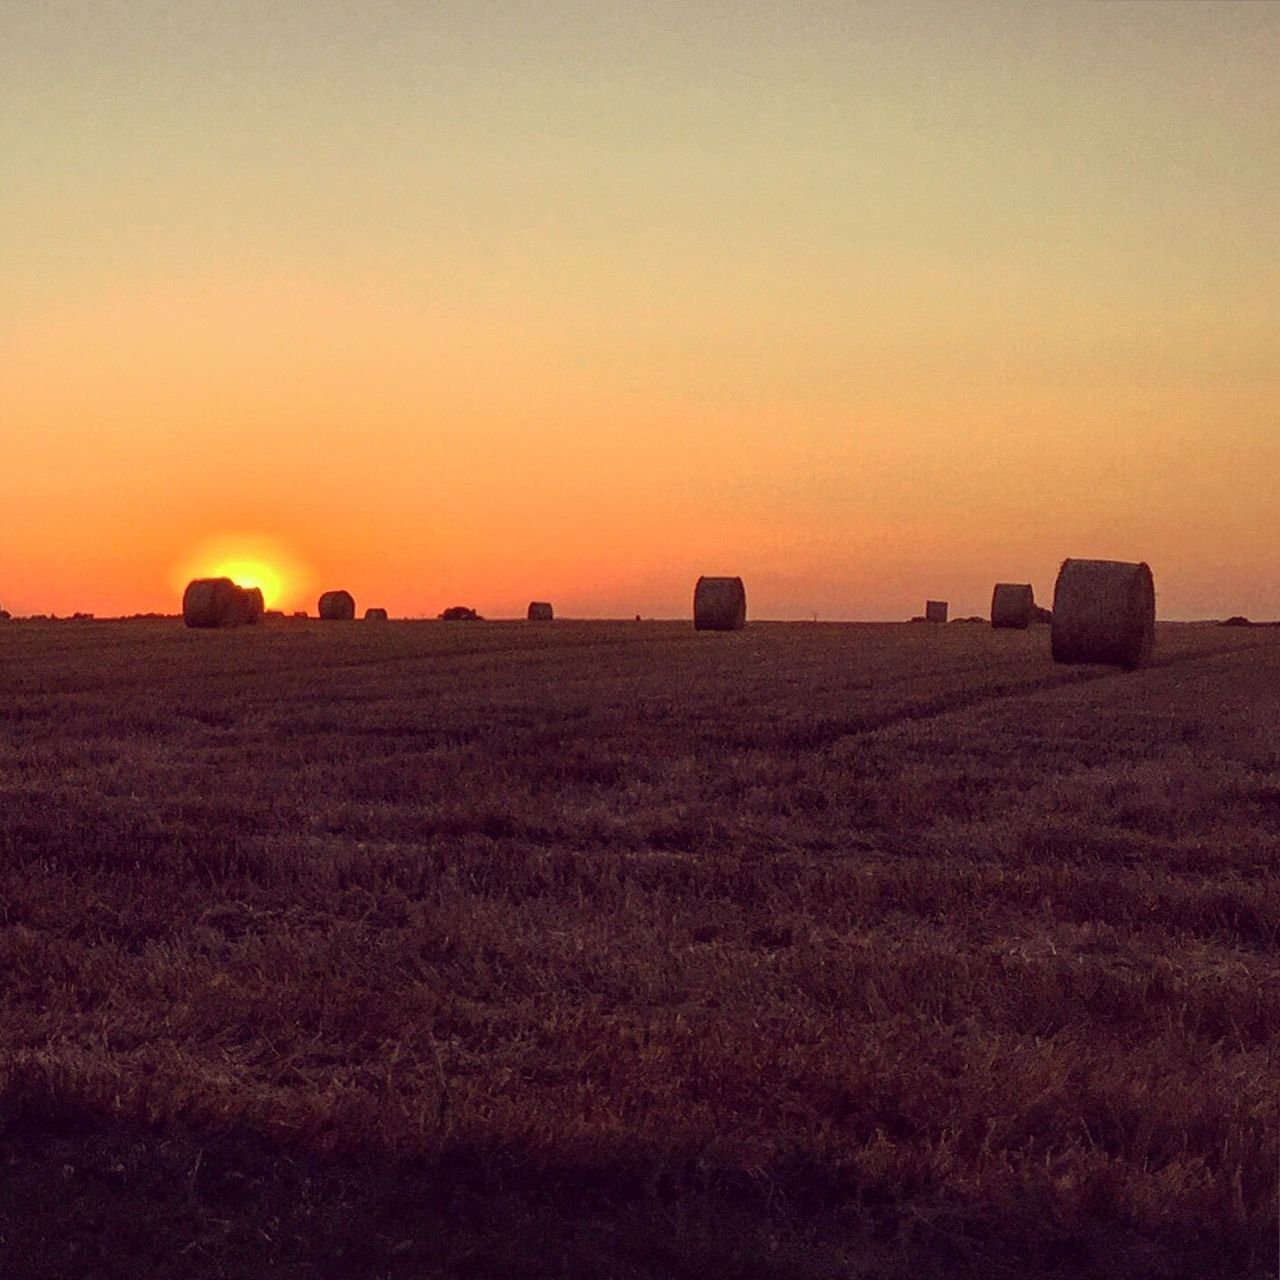 Sunset Landscape Sun Scenics Tranquil Scene Tranquility Silhouette Orange Color Field Clear Sky Beauty In Nature Rural Scene Agriculture Nature Calm Solitude Sky Outdoors Horizon Over Land Non-urban Scene